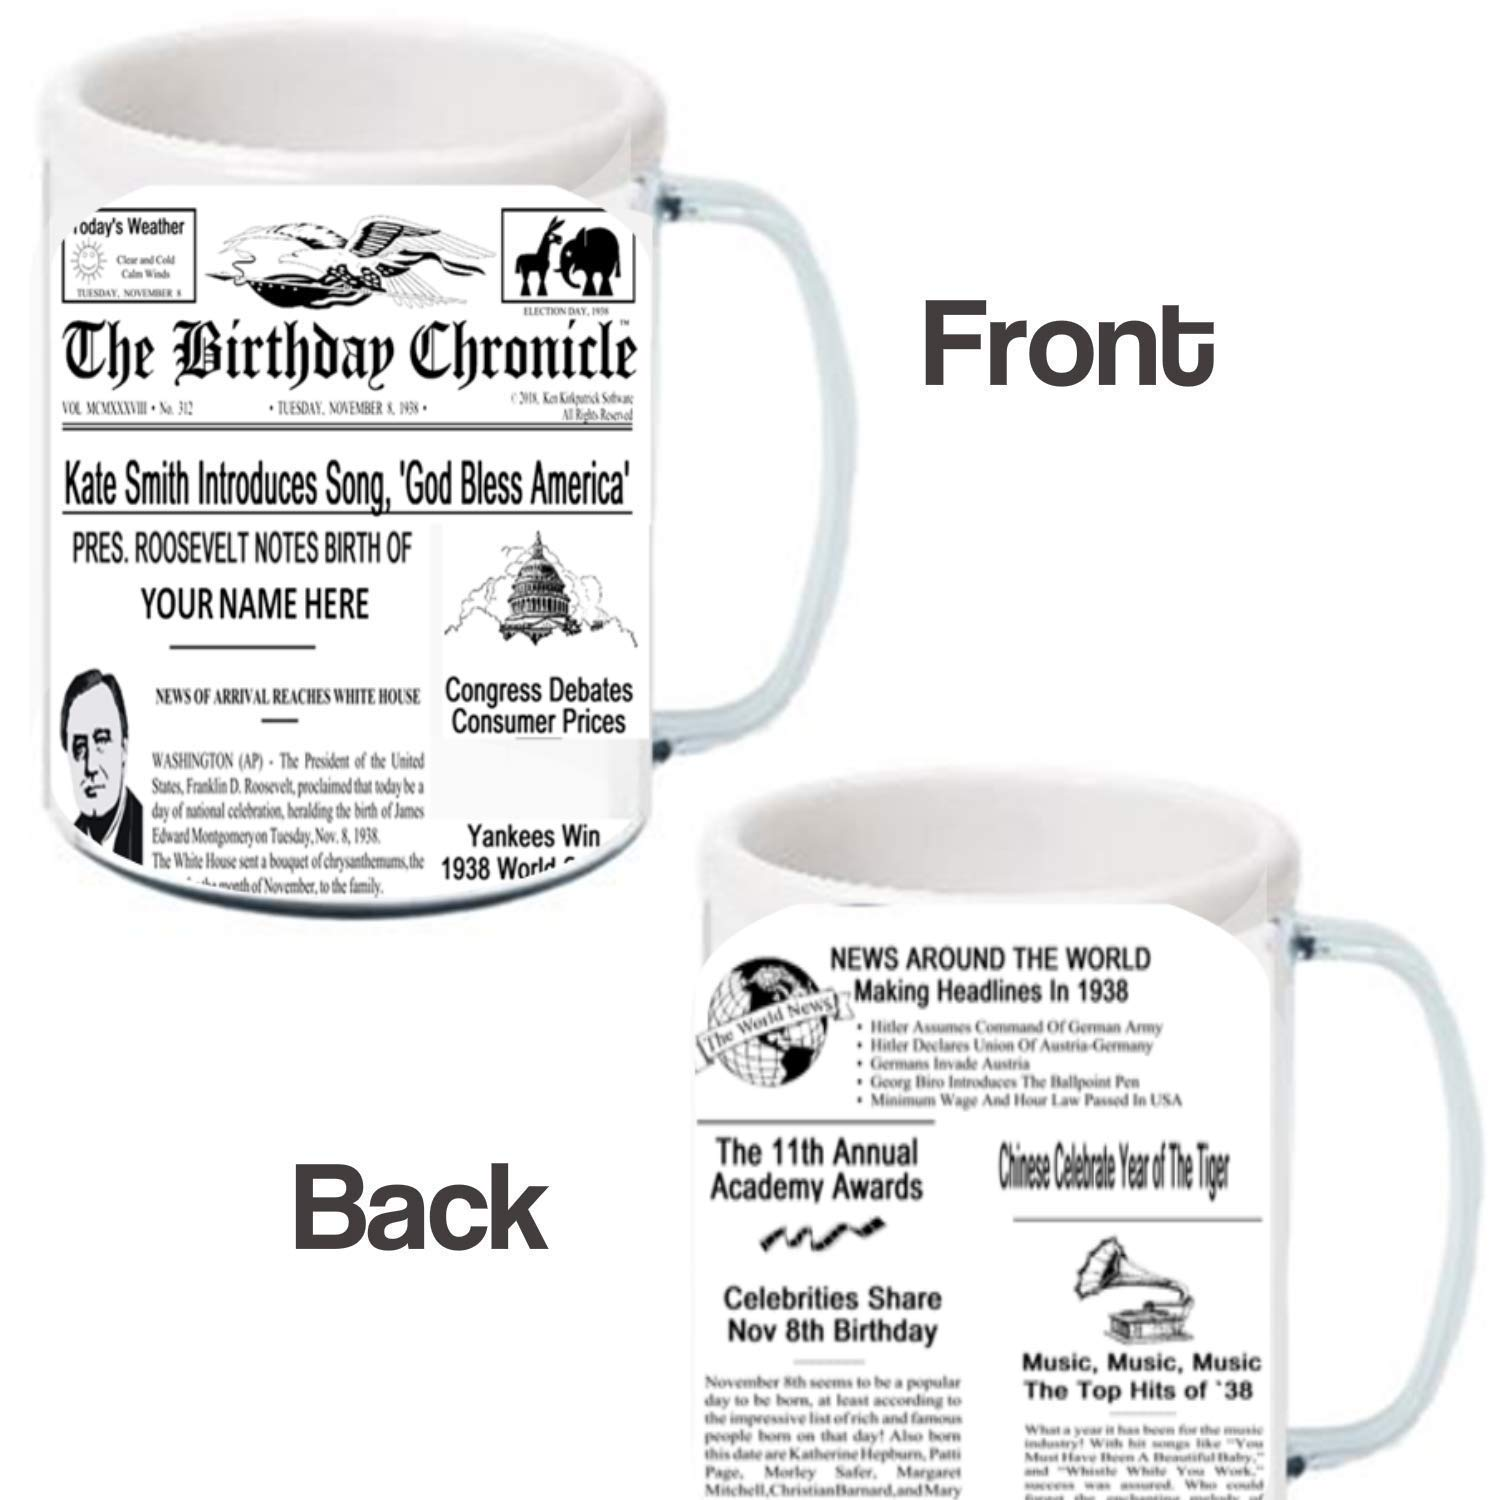 EVENTS HIGH LIGHTS FUN FACTS FROM 1900-2015 CUSTOMIZED PERSONAL BIRTHDAY NEWSPAPER CHRONICLE PRINT SPECIAL ANNOUNCEMENTS THAT HAPPENED THE DAY-YEAR YOU WERE BORN